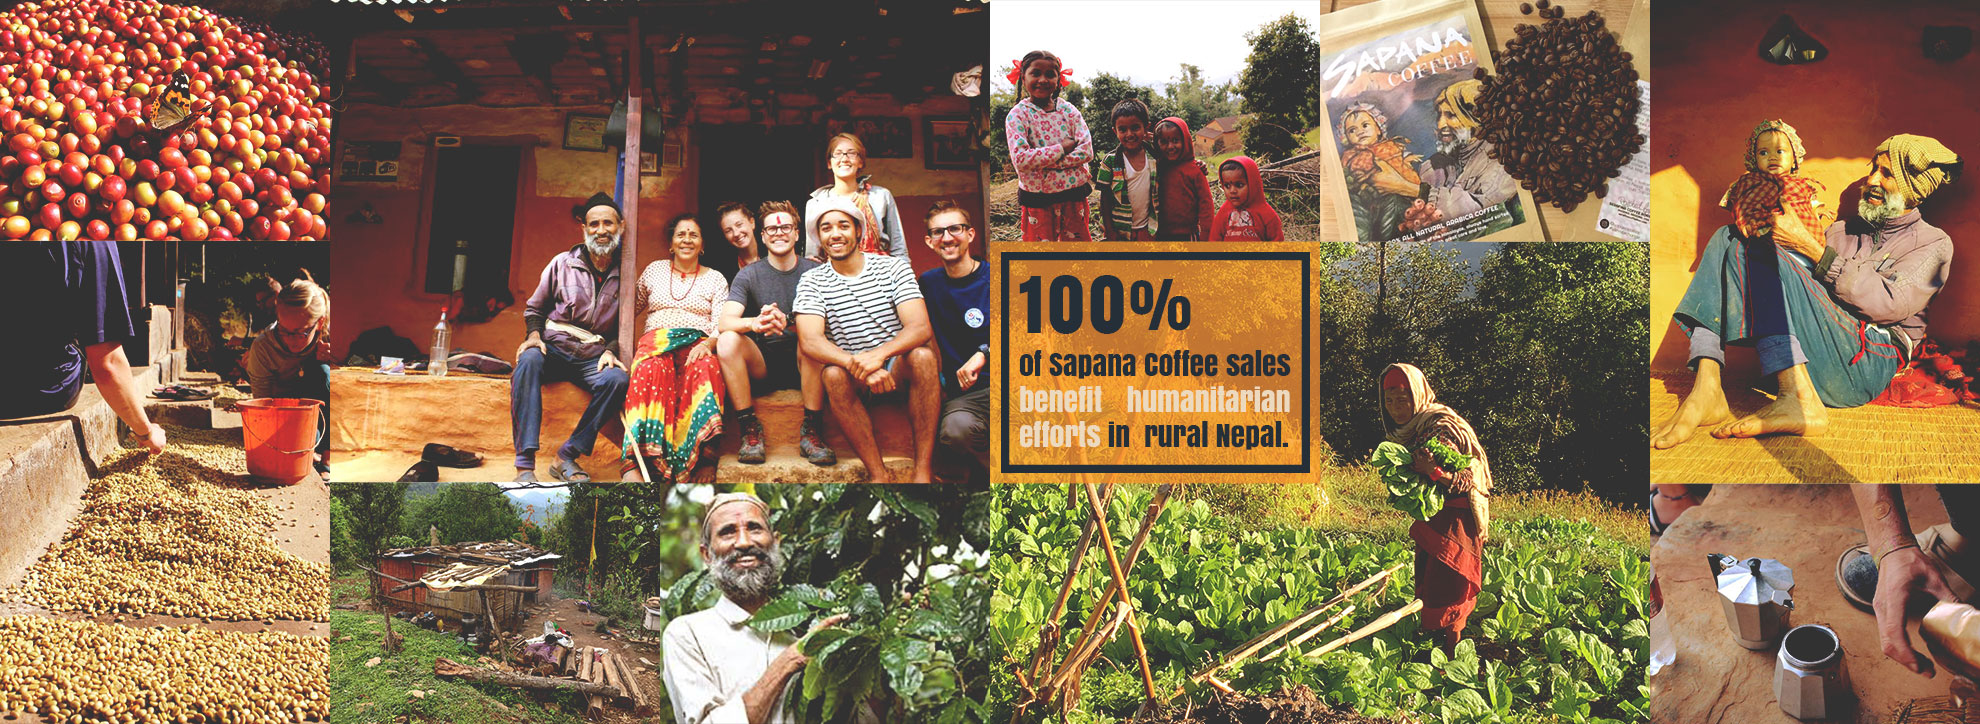 Sapana Coffee from Elevate Nepal Inc